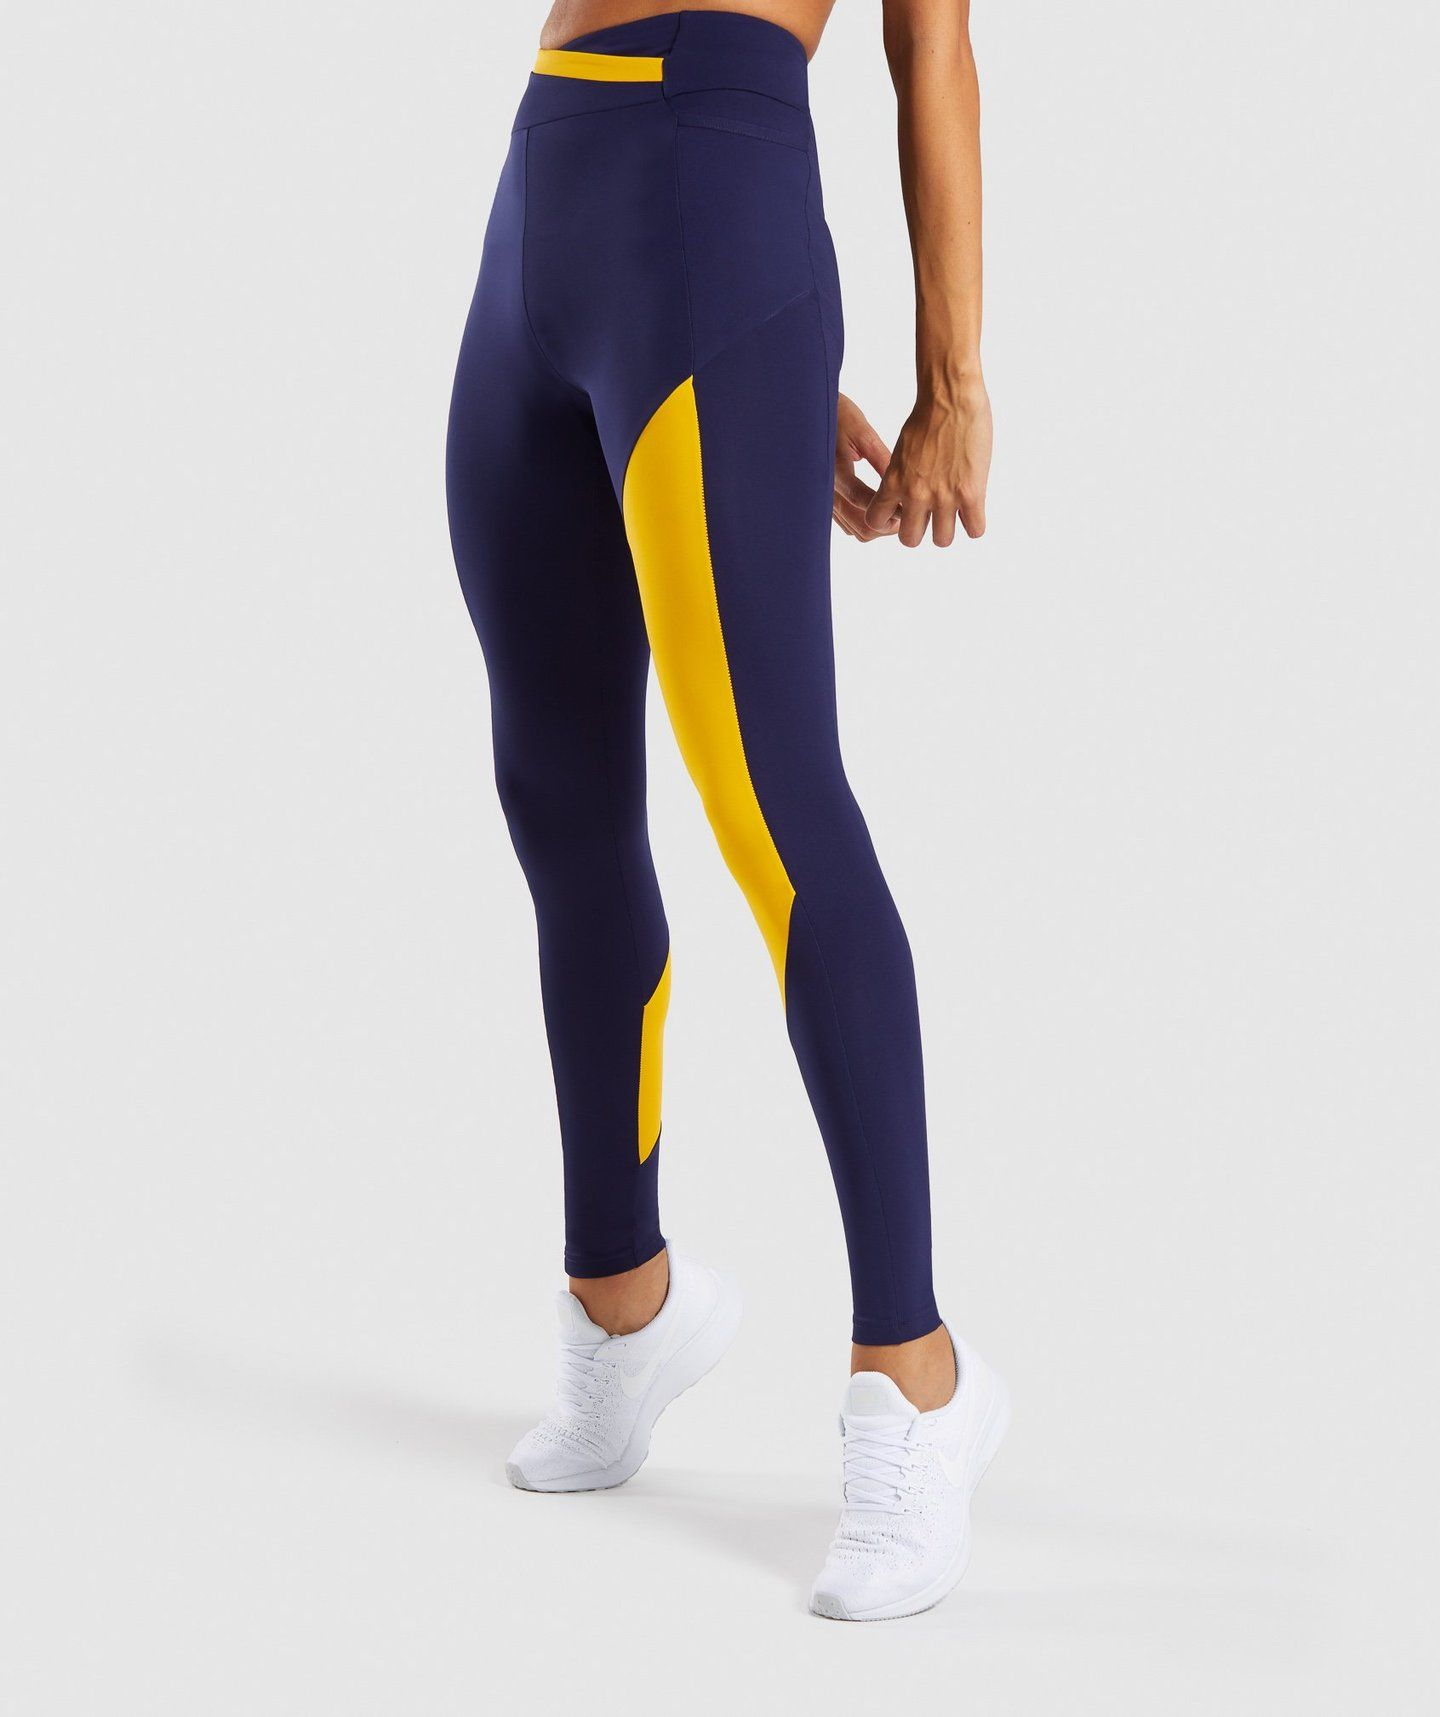 c8a7600c58 Gymshark Asymmetric Leggings - Evening Navy Blue/Citrus Yellow in ...